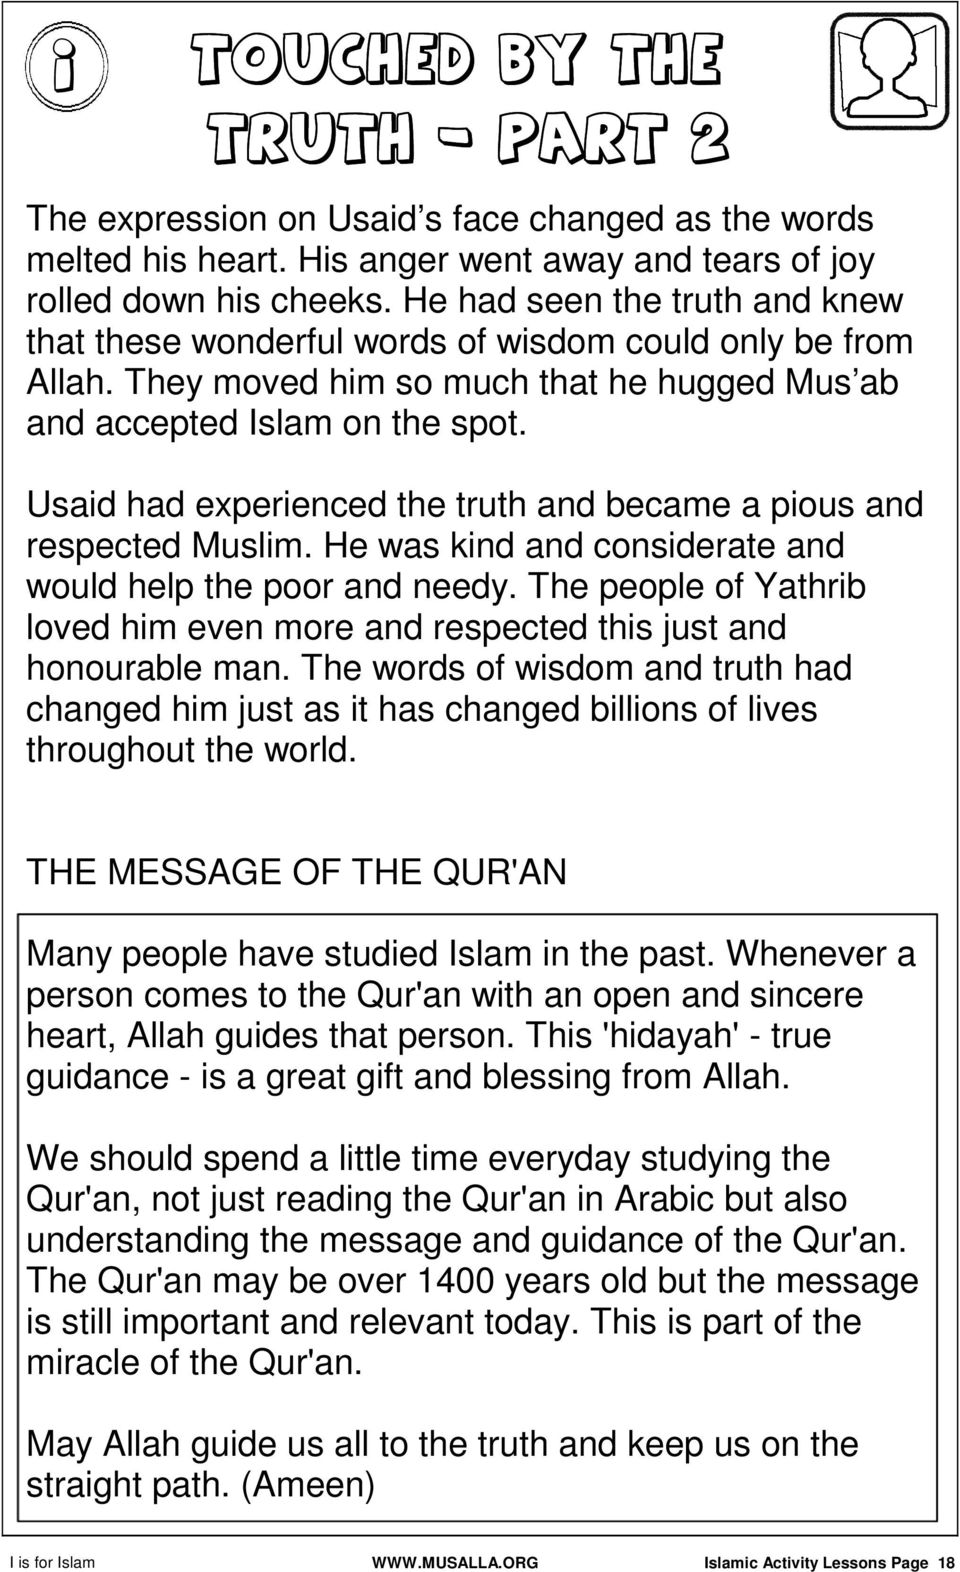 Islamic Activity Lessons Page 1 - PDF